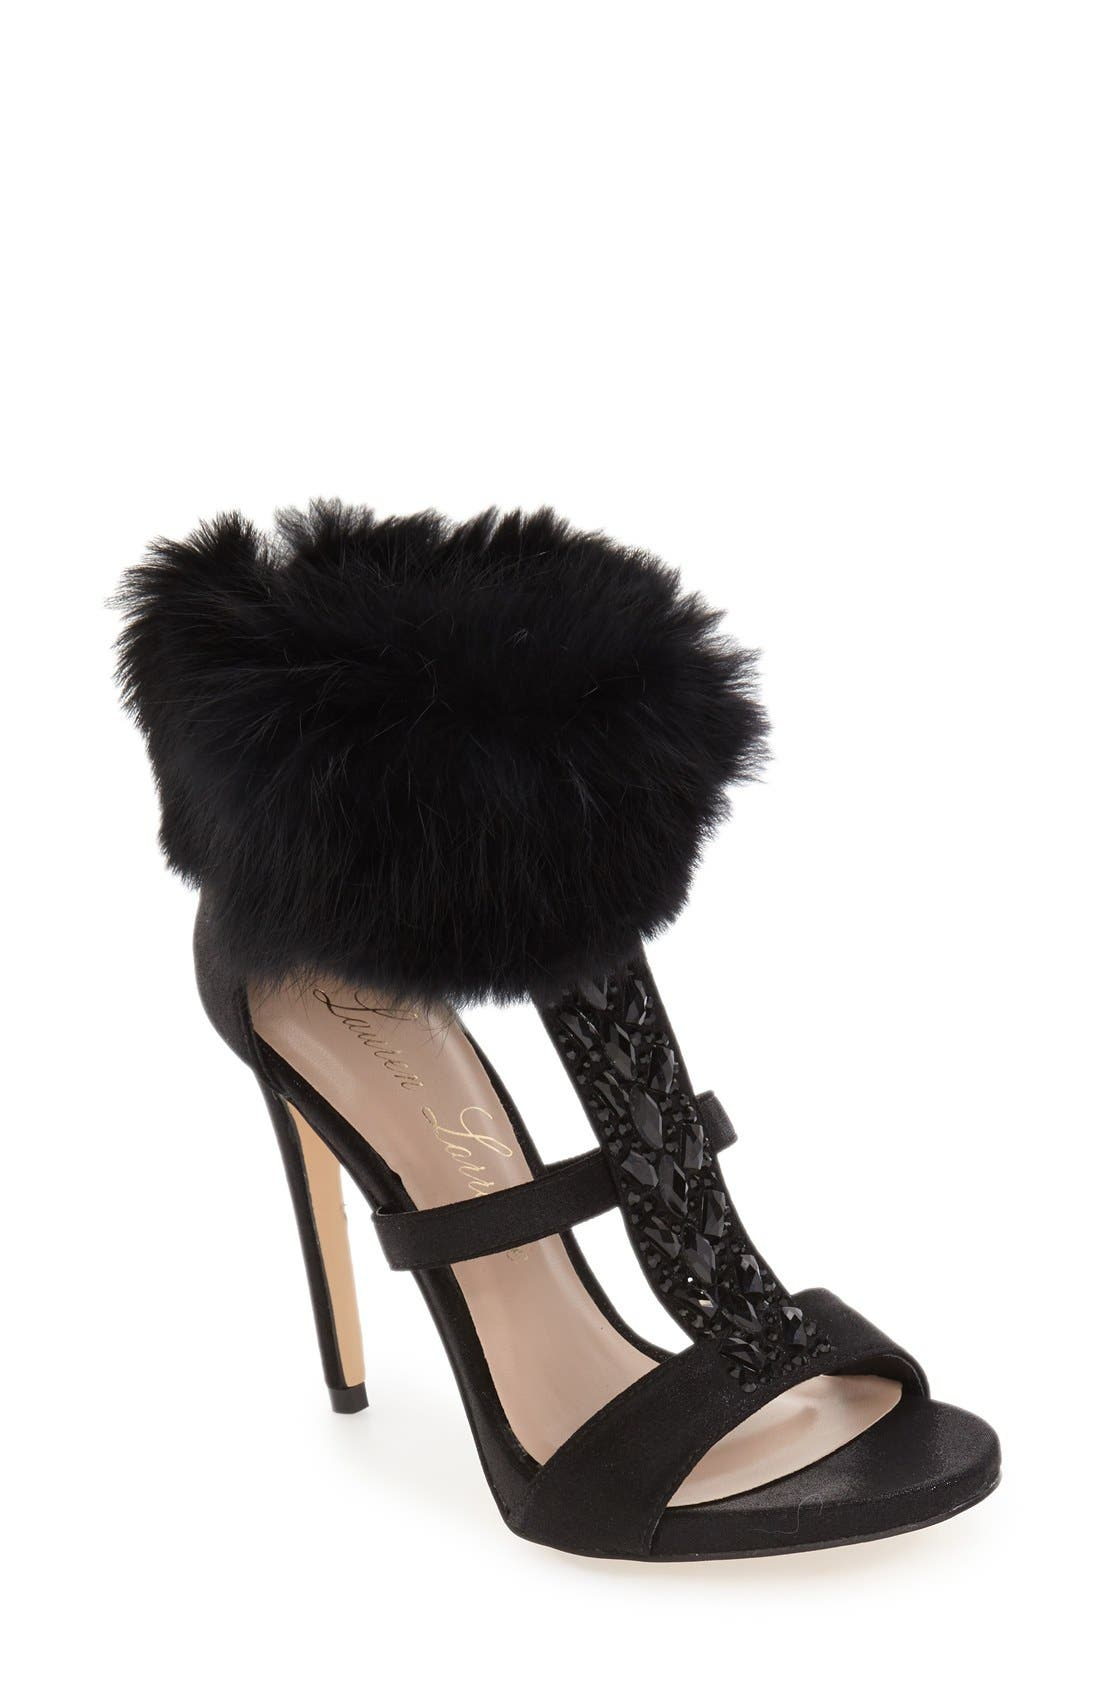 LAUREN LORRAINE 'Angela' Genuine Rabbit Fur Cuff Sandal